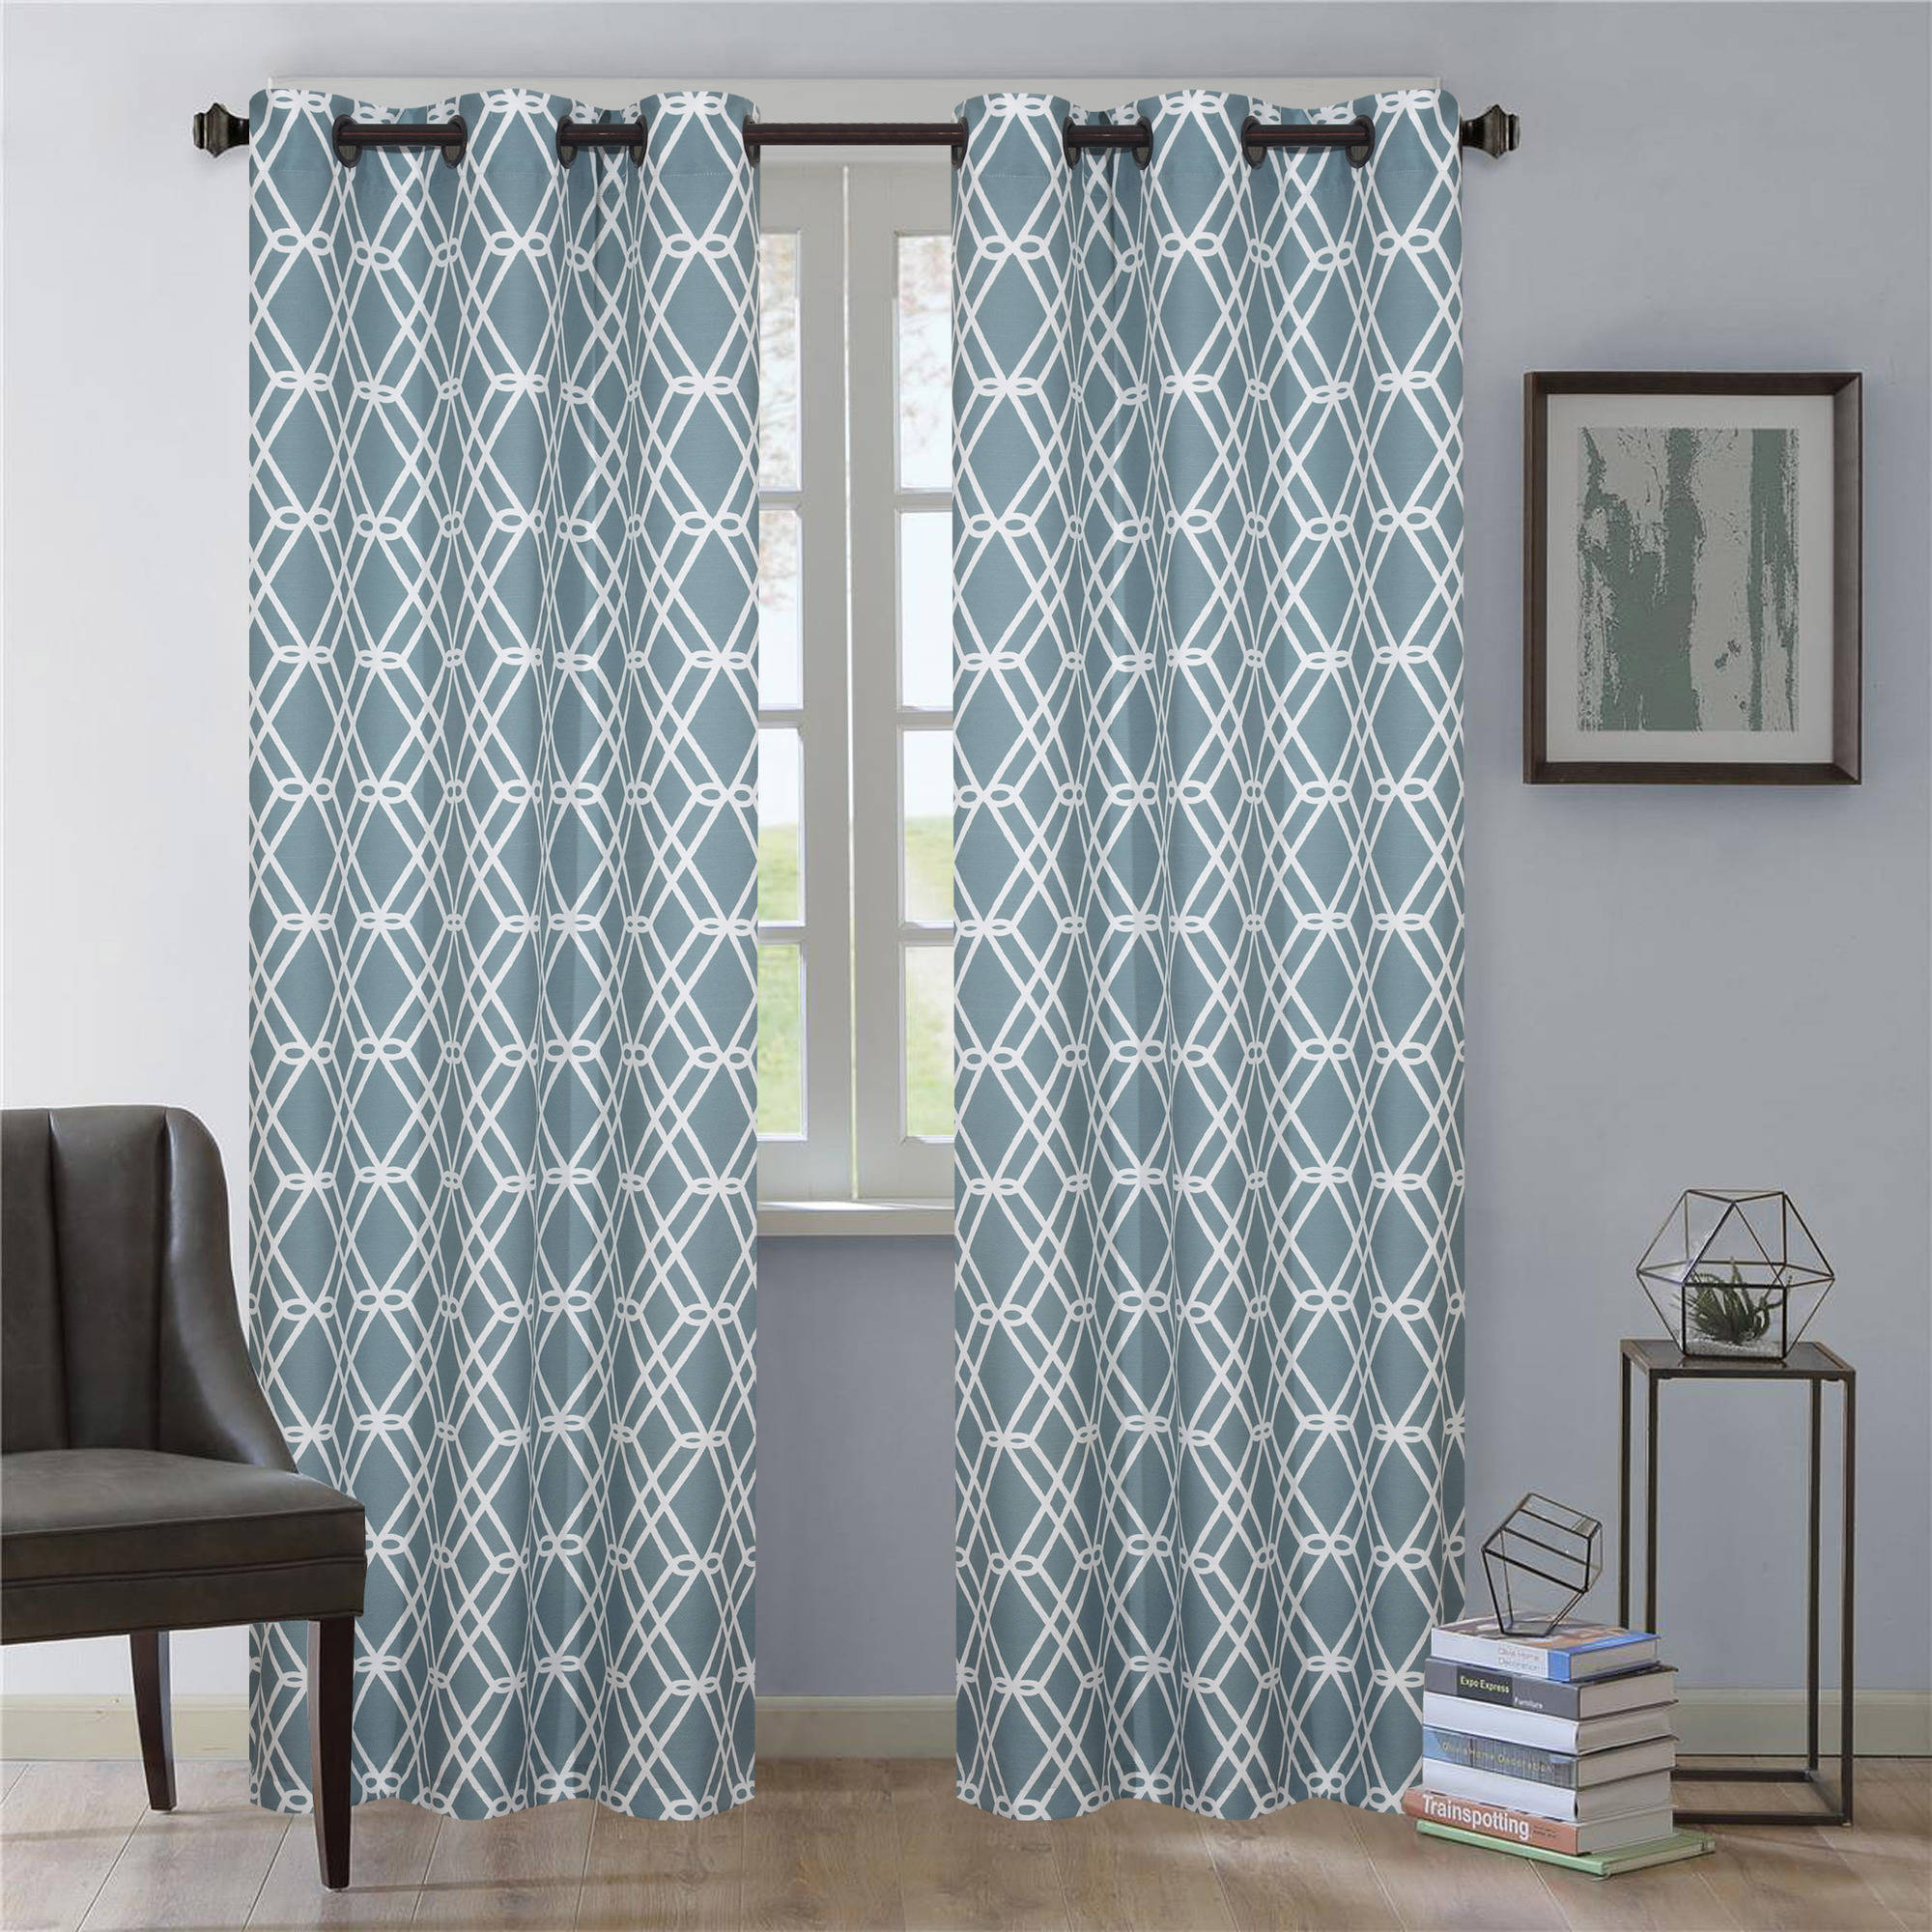 Nanshing Magnus Window Curtain Panels Set of 2 with Grommet by NANSHING AMERICA INC